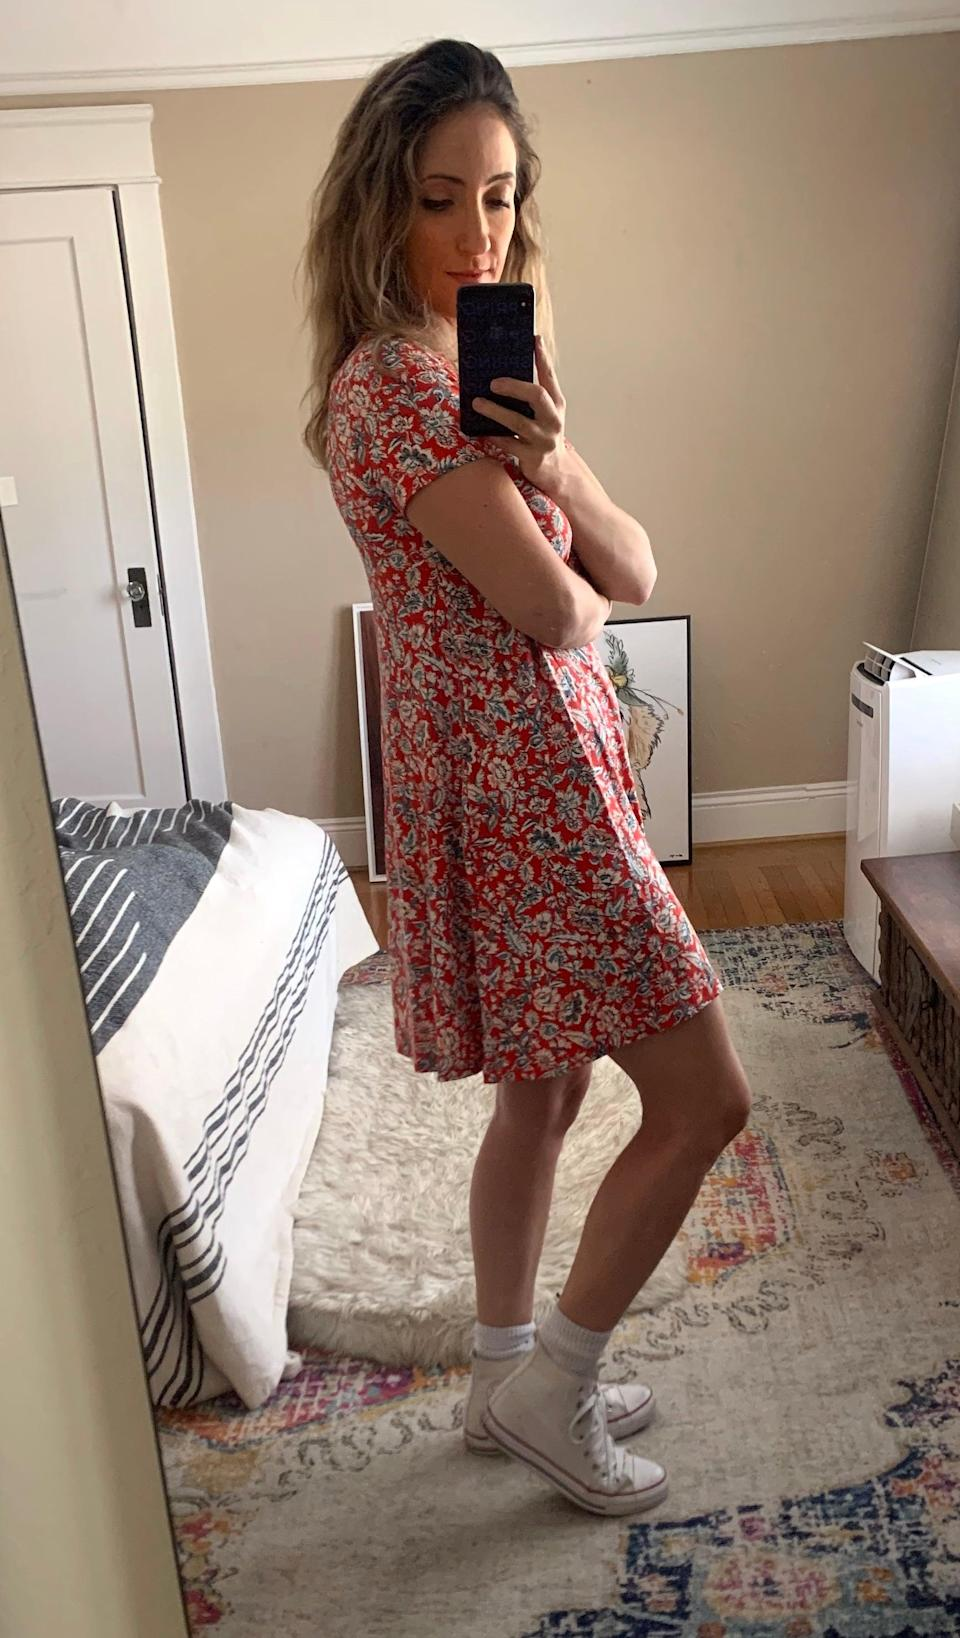 """<p><strong>The item:</strong> <span>Old Navy Jersey Swing Dress</span> (Sold Out)</p> <p><strong>What our editor said: </strong>""""The dress fits exactly like a T-shirt up top and is relaxed through the body with a flared hem that swings out as you walk, so there is a ton of space to move around. I also didn't want it to be too long because I knew I'd want to wear the dress with socks and sneakers; I like when dresses hit a few inches up above the knee."""" - RB</p> <p>If you want to read more here is the <a href=""""http://www.popsugar.com/fashion/comfortable-floral-dress-at-old-navy-editor-review-47582000"""" class=""""link rapid-noclick-resp"""" rel=""""nofollow noopener"""" target=""""_blank"""" data-ylk=""""slk:complete review"""">complete review</a>.</p>"""